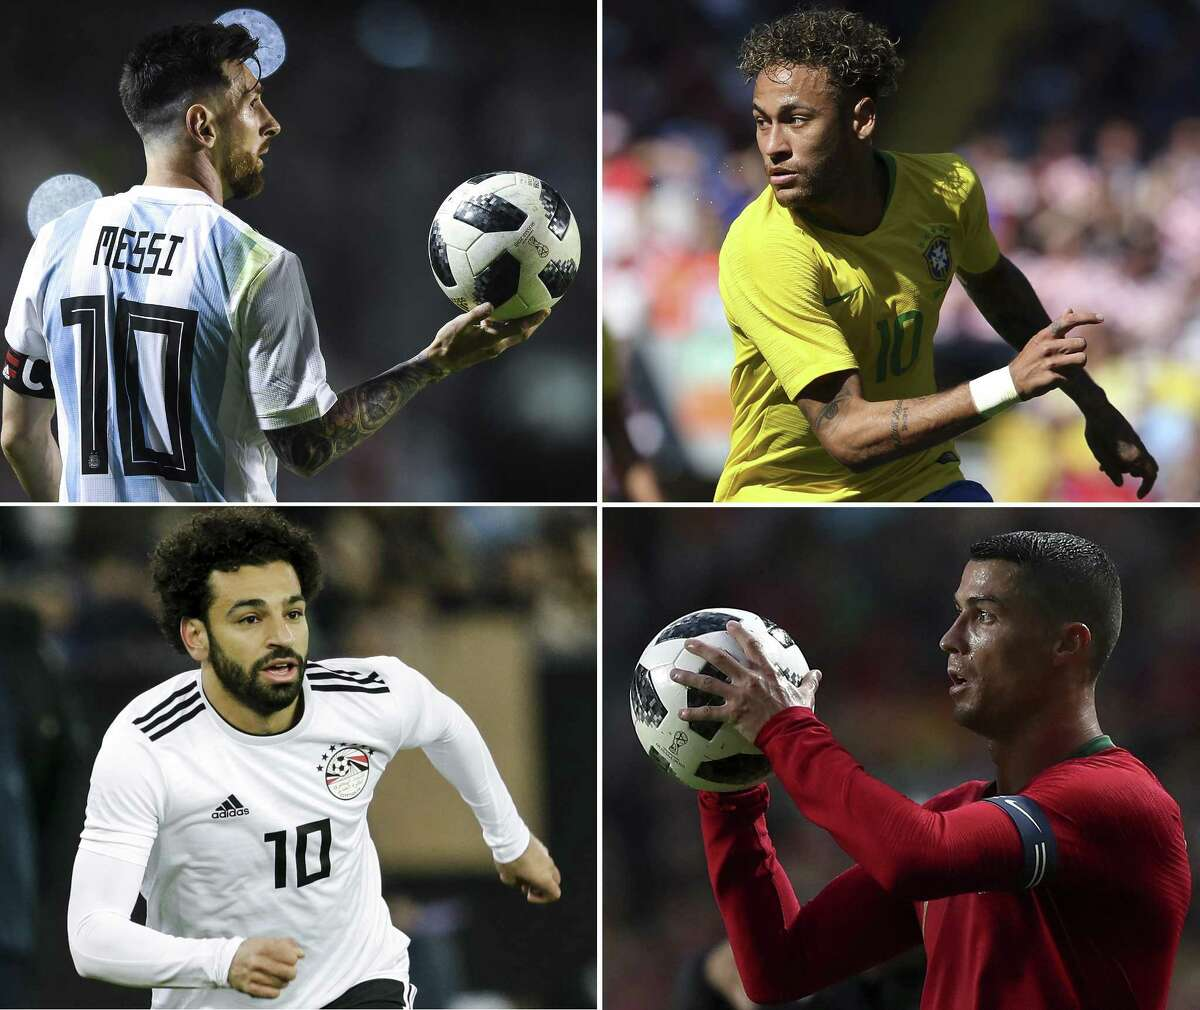 Lionel Messi (top left clockwise) of Argentina holds the ball during an international friendly match between Argentina and Haiti at Alberto J. Armando Stadium on May 29, 2018 in Buenos Aires, Argentina. ; Neymar of Brazil during the International friendly match between Croatia and Brazil at Anfield on June 3, 2018 in Liverpool, England. ; Portugal's forward Cristiano Ronaldo in action during the FIFA World Cup Russia 2018 preparation football match Portugal vs Algeria, at the Luz stadium in Lisbon, Portugal, on June 7, 2018. ; Mohamed Salah of Egypt during the International Friendly match between Egypt v Portugal at the Letzigrund Stadium on March 23, 2018 in Zurich Switzerland.